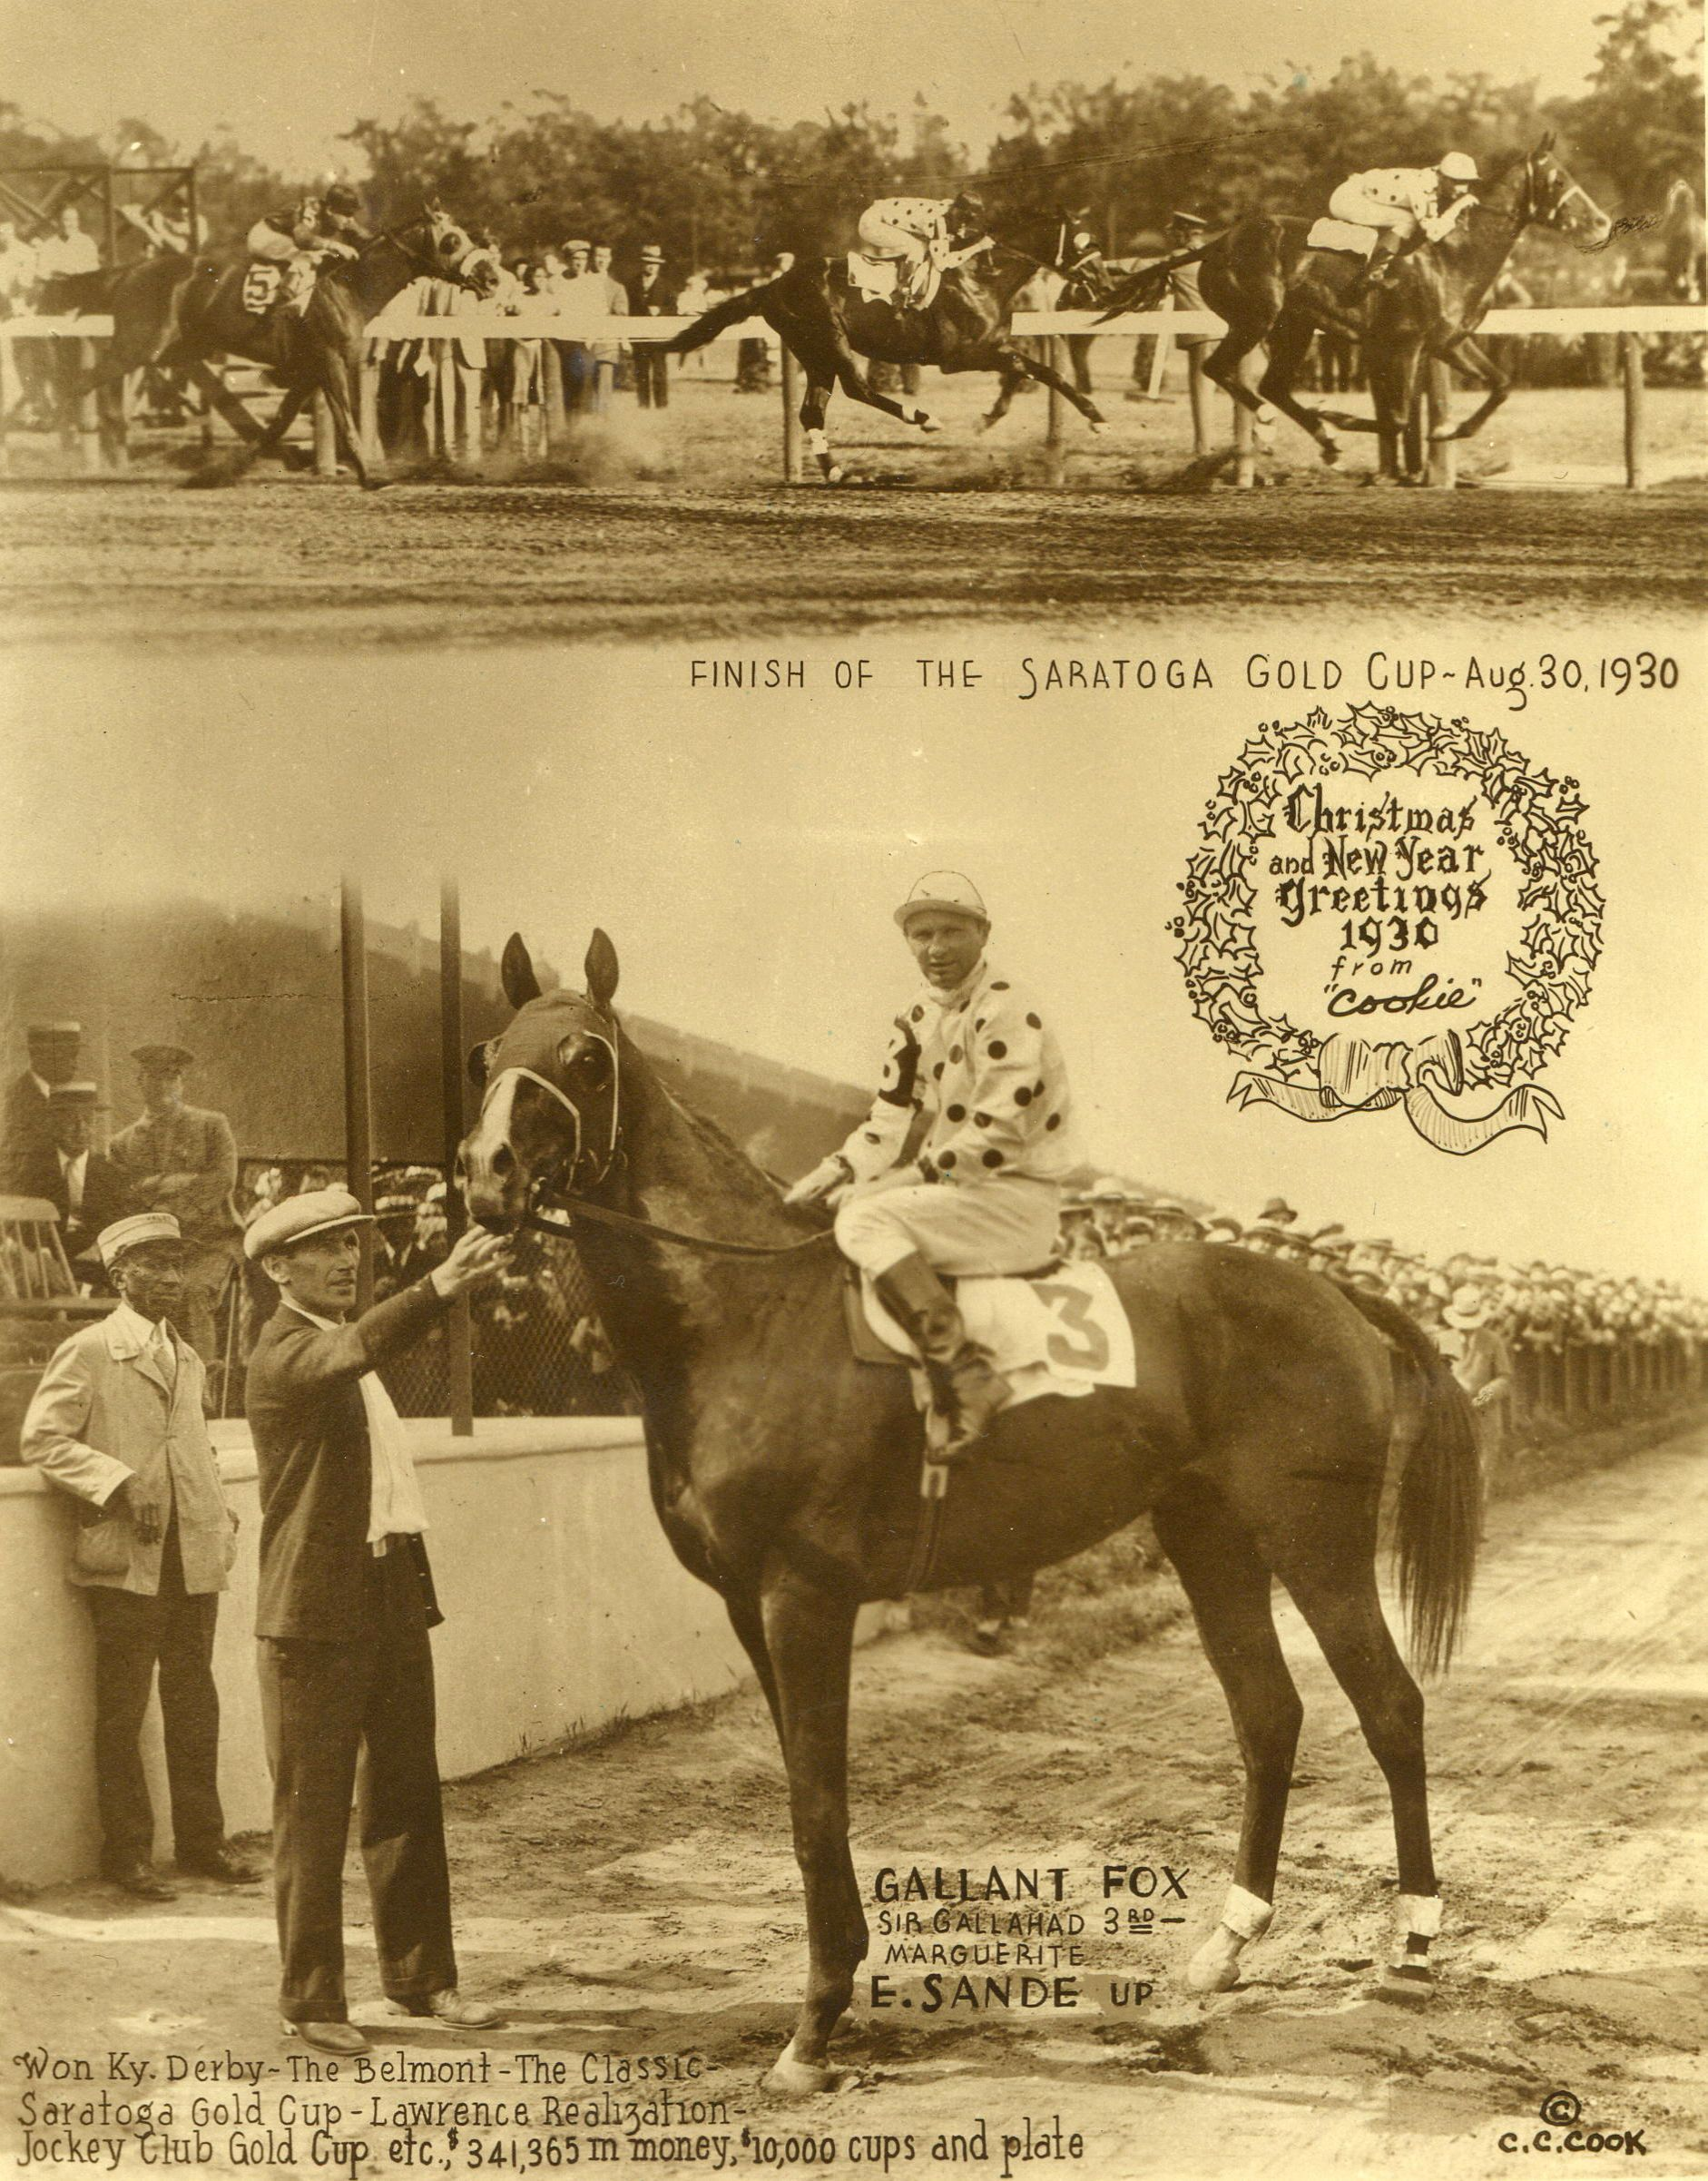 """The 1930 Saratoga Cup, won by Gallant Fox (Earl Sande up) featured in the annual """"Christmas Cookie"""" greeting card produced by photographer C. C. Cook (C.C. Cook/Museum Collection)"""